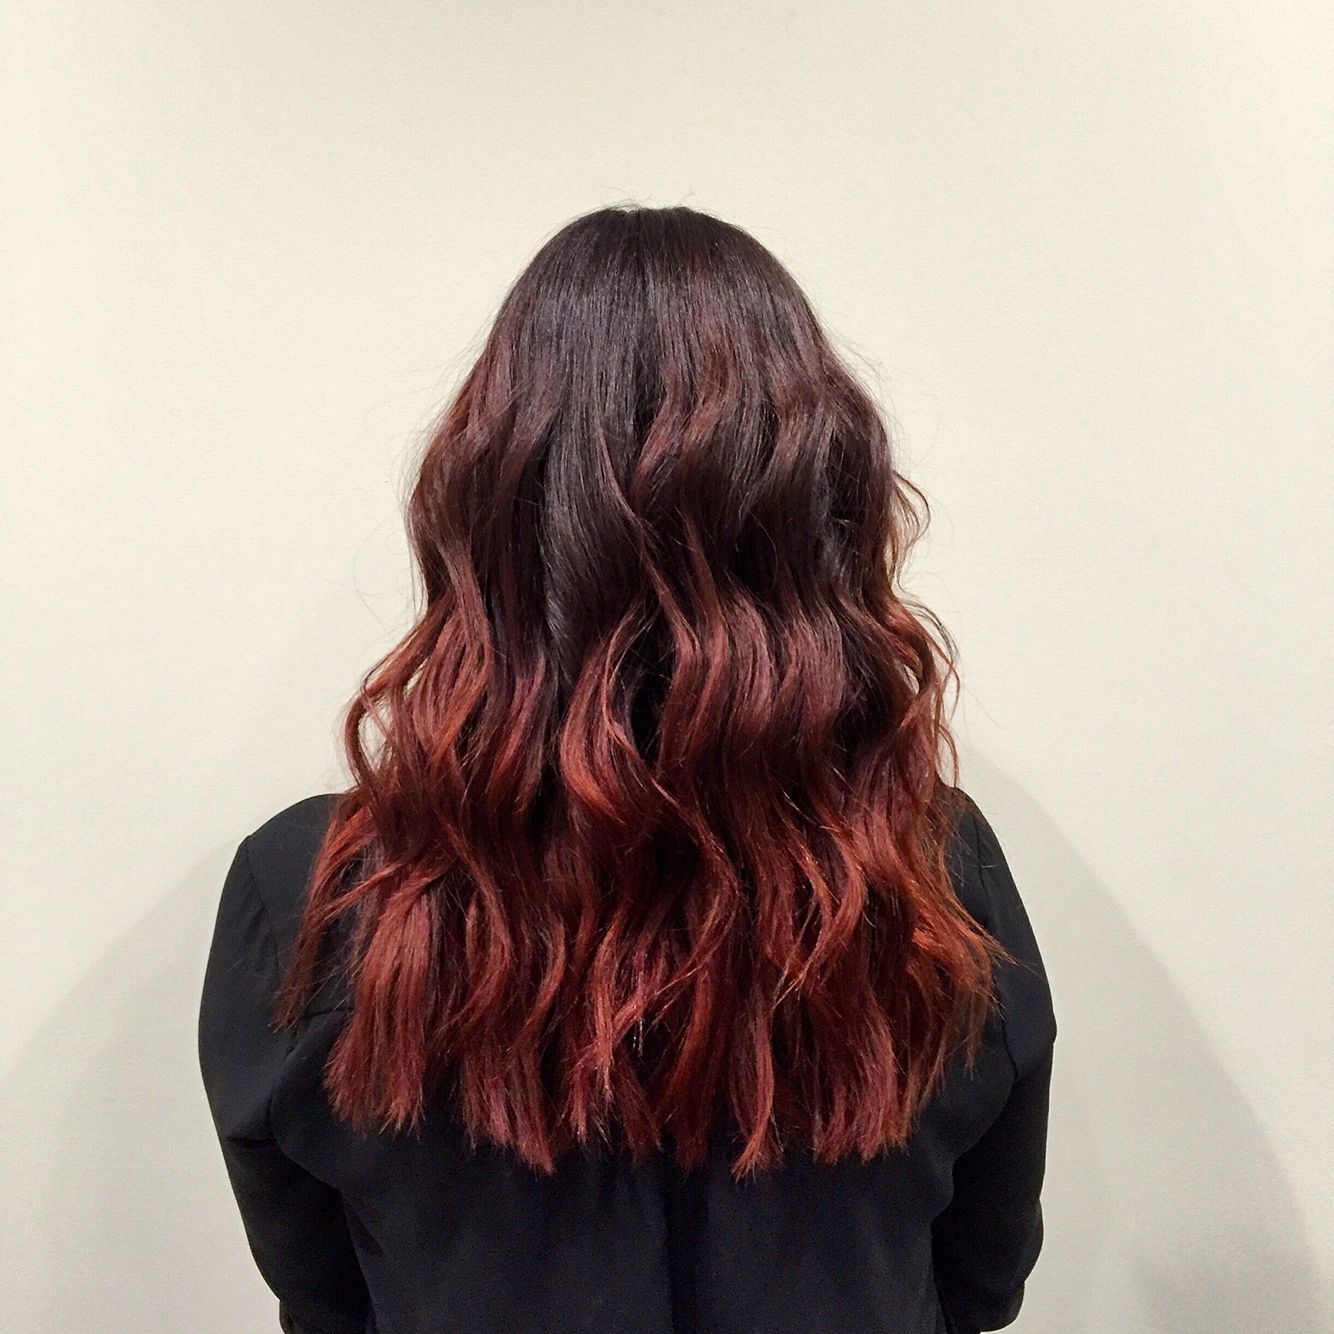 Red redhair ombre waves hairstyle redorangehair workflow